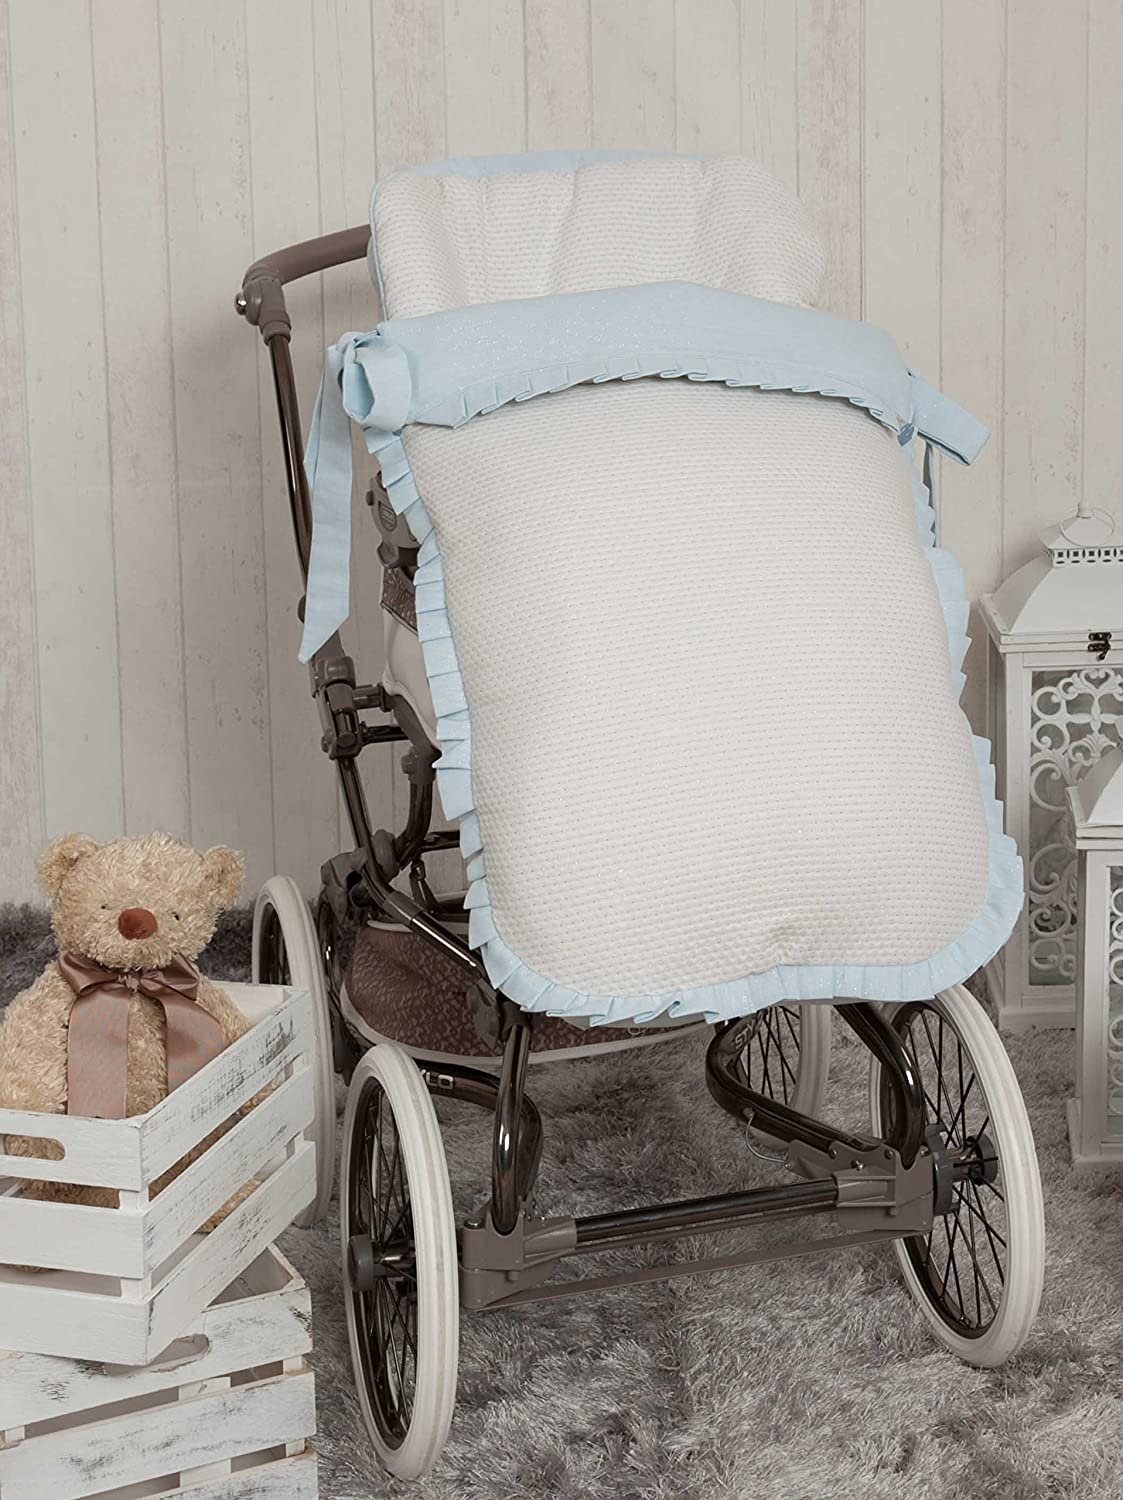 Babyline Destellos Seat Cover for Buggy